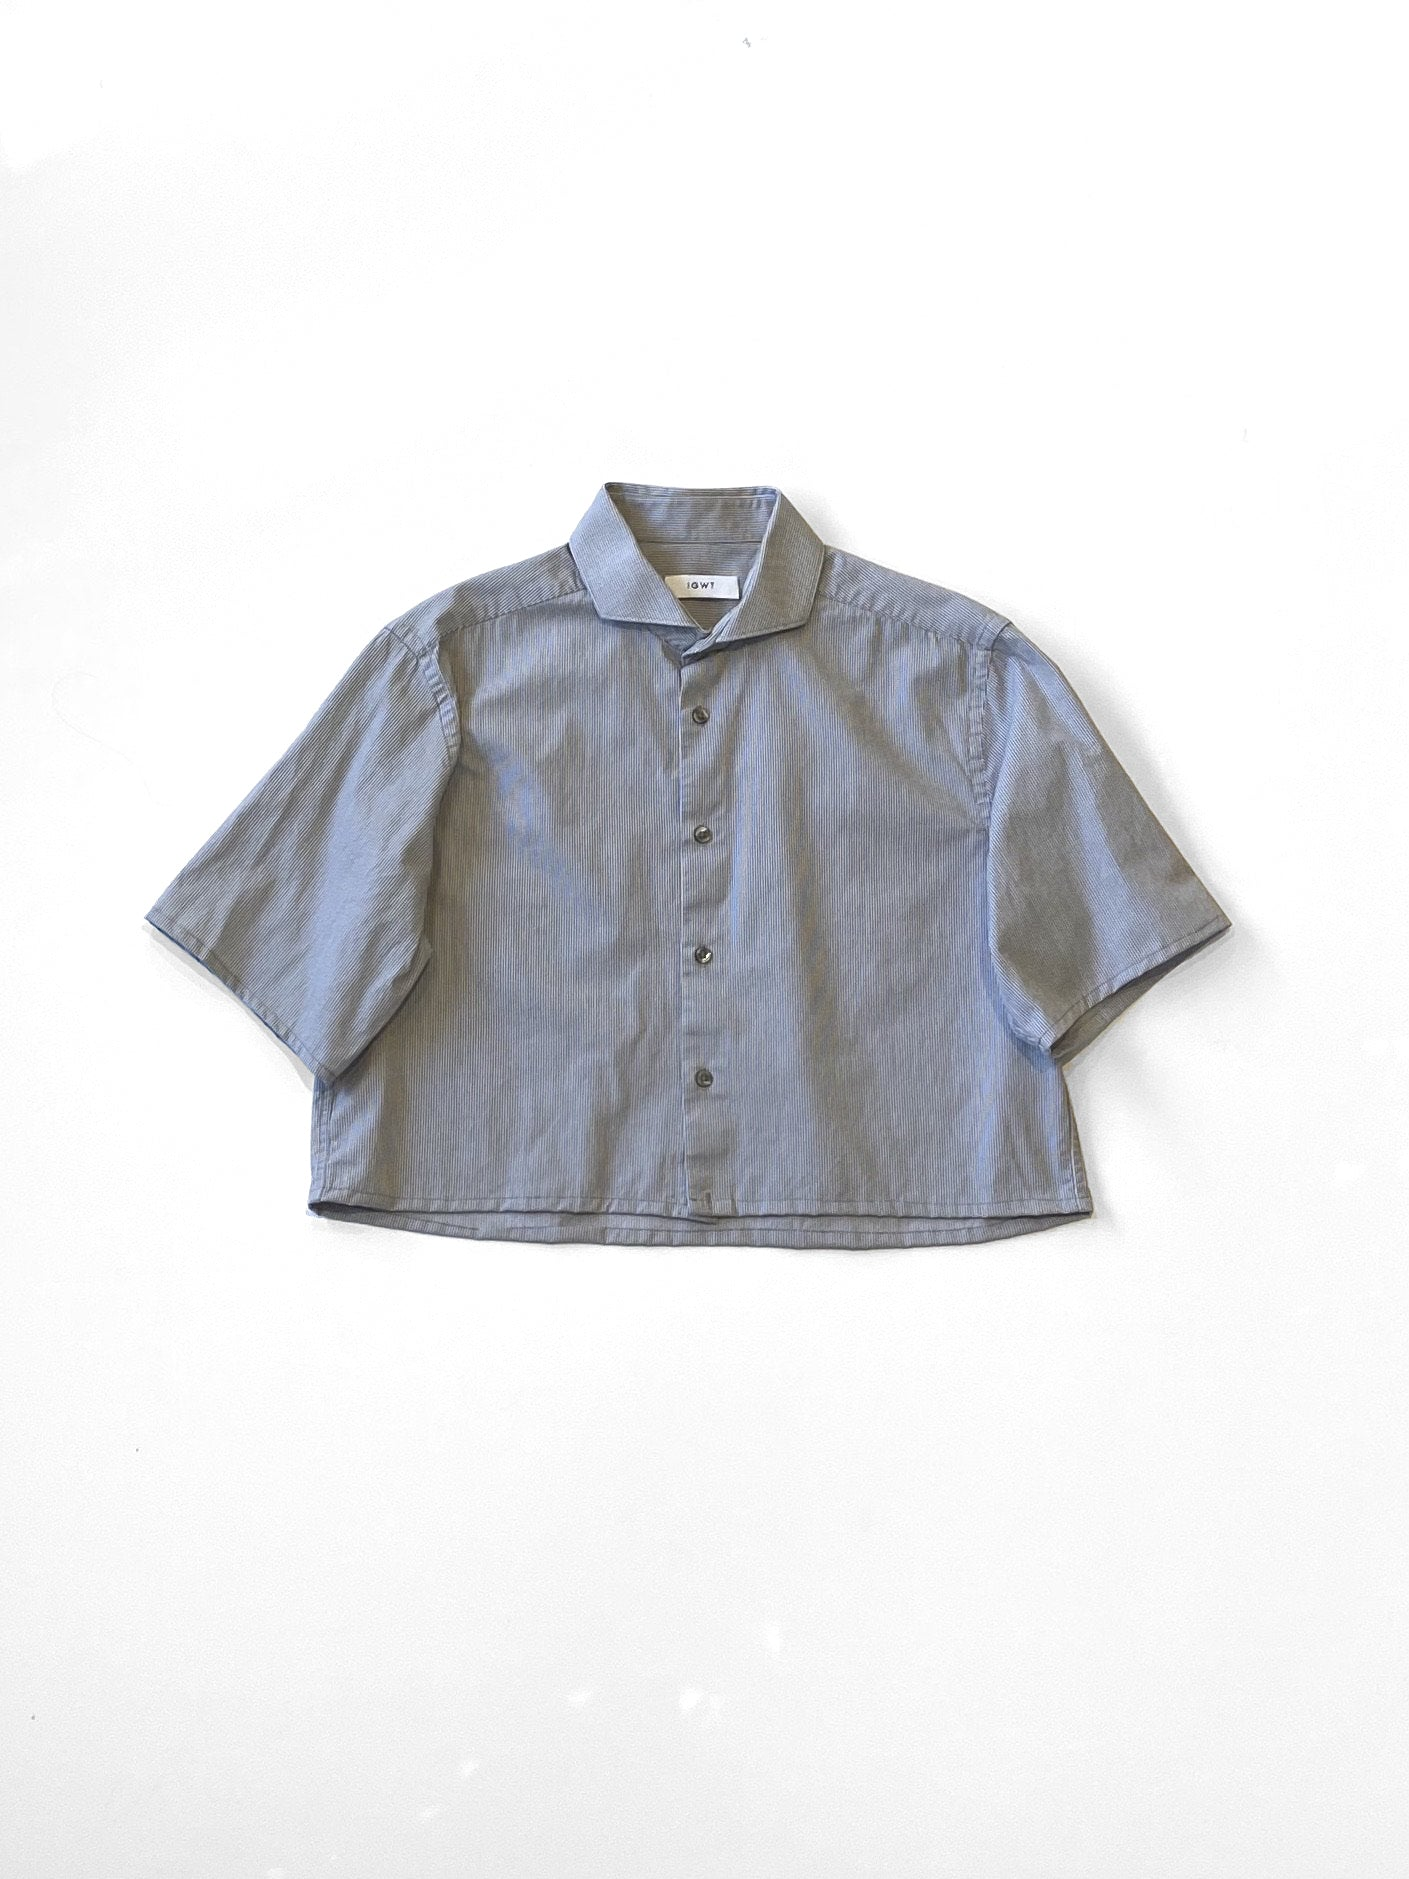 UP! - Reworked Button-Down Shirt  / Grey Pincord